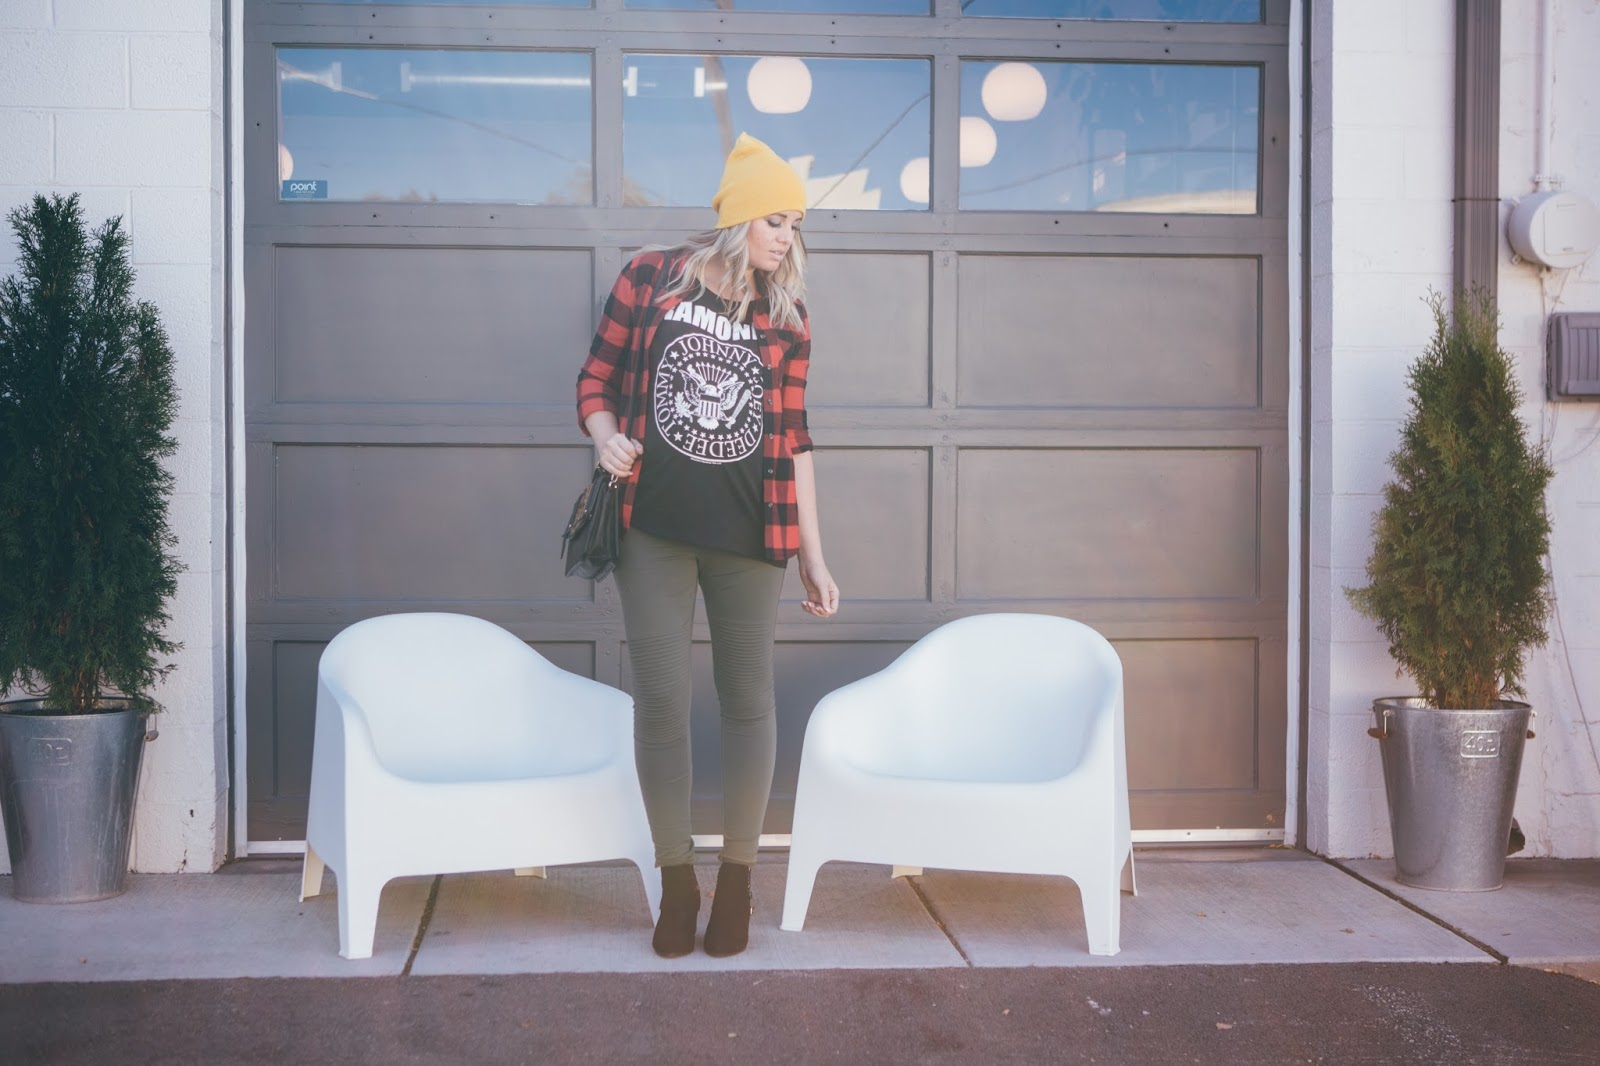 Maternity Outfit, Ramones Top, Pregnant Outfit, Utah Fashion Blogger